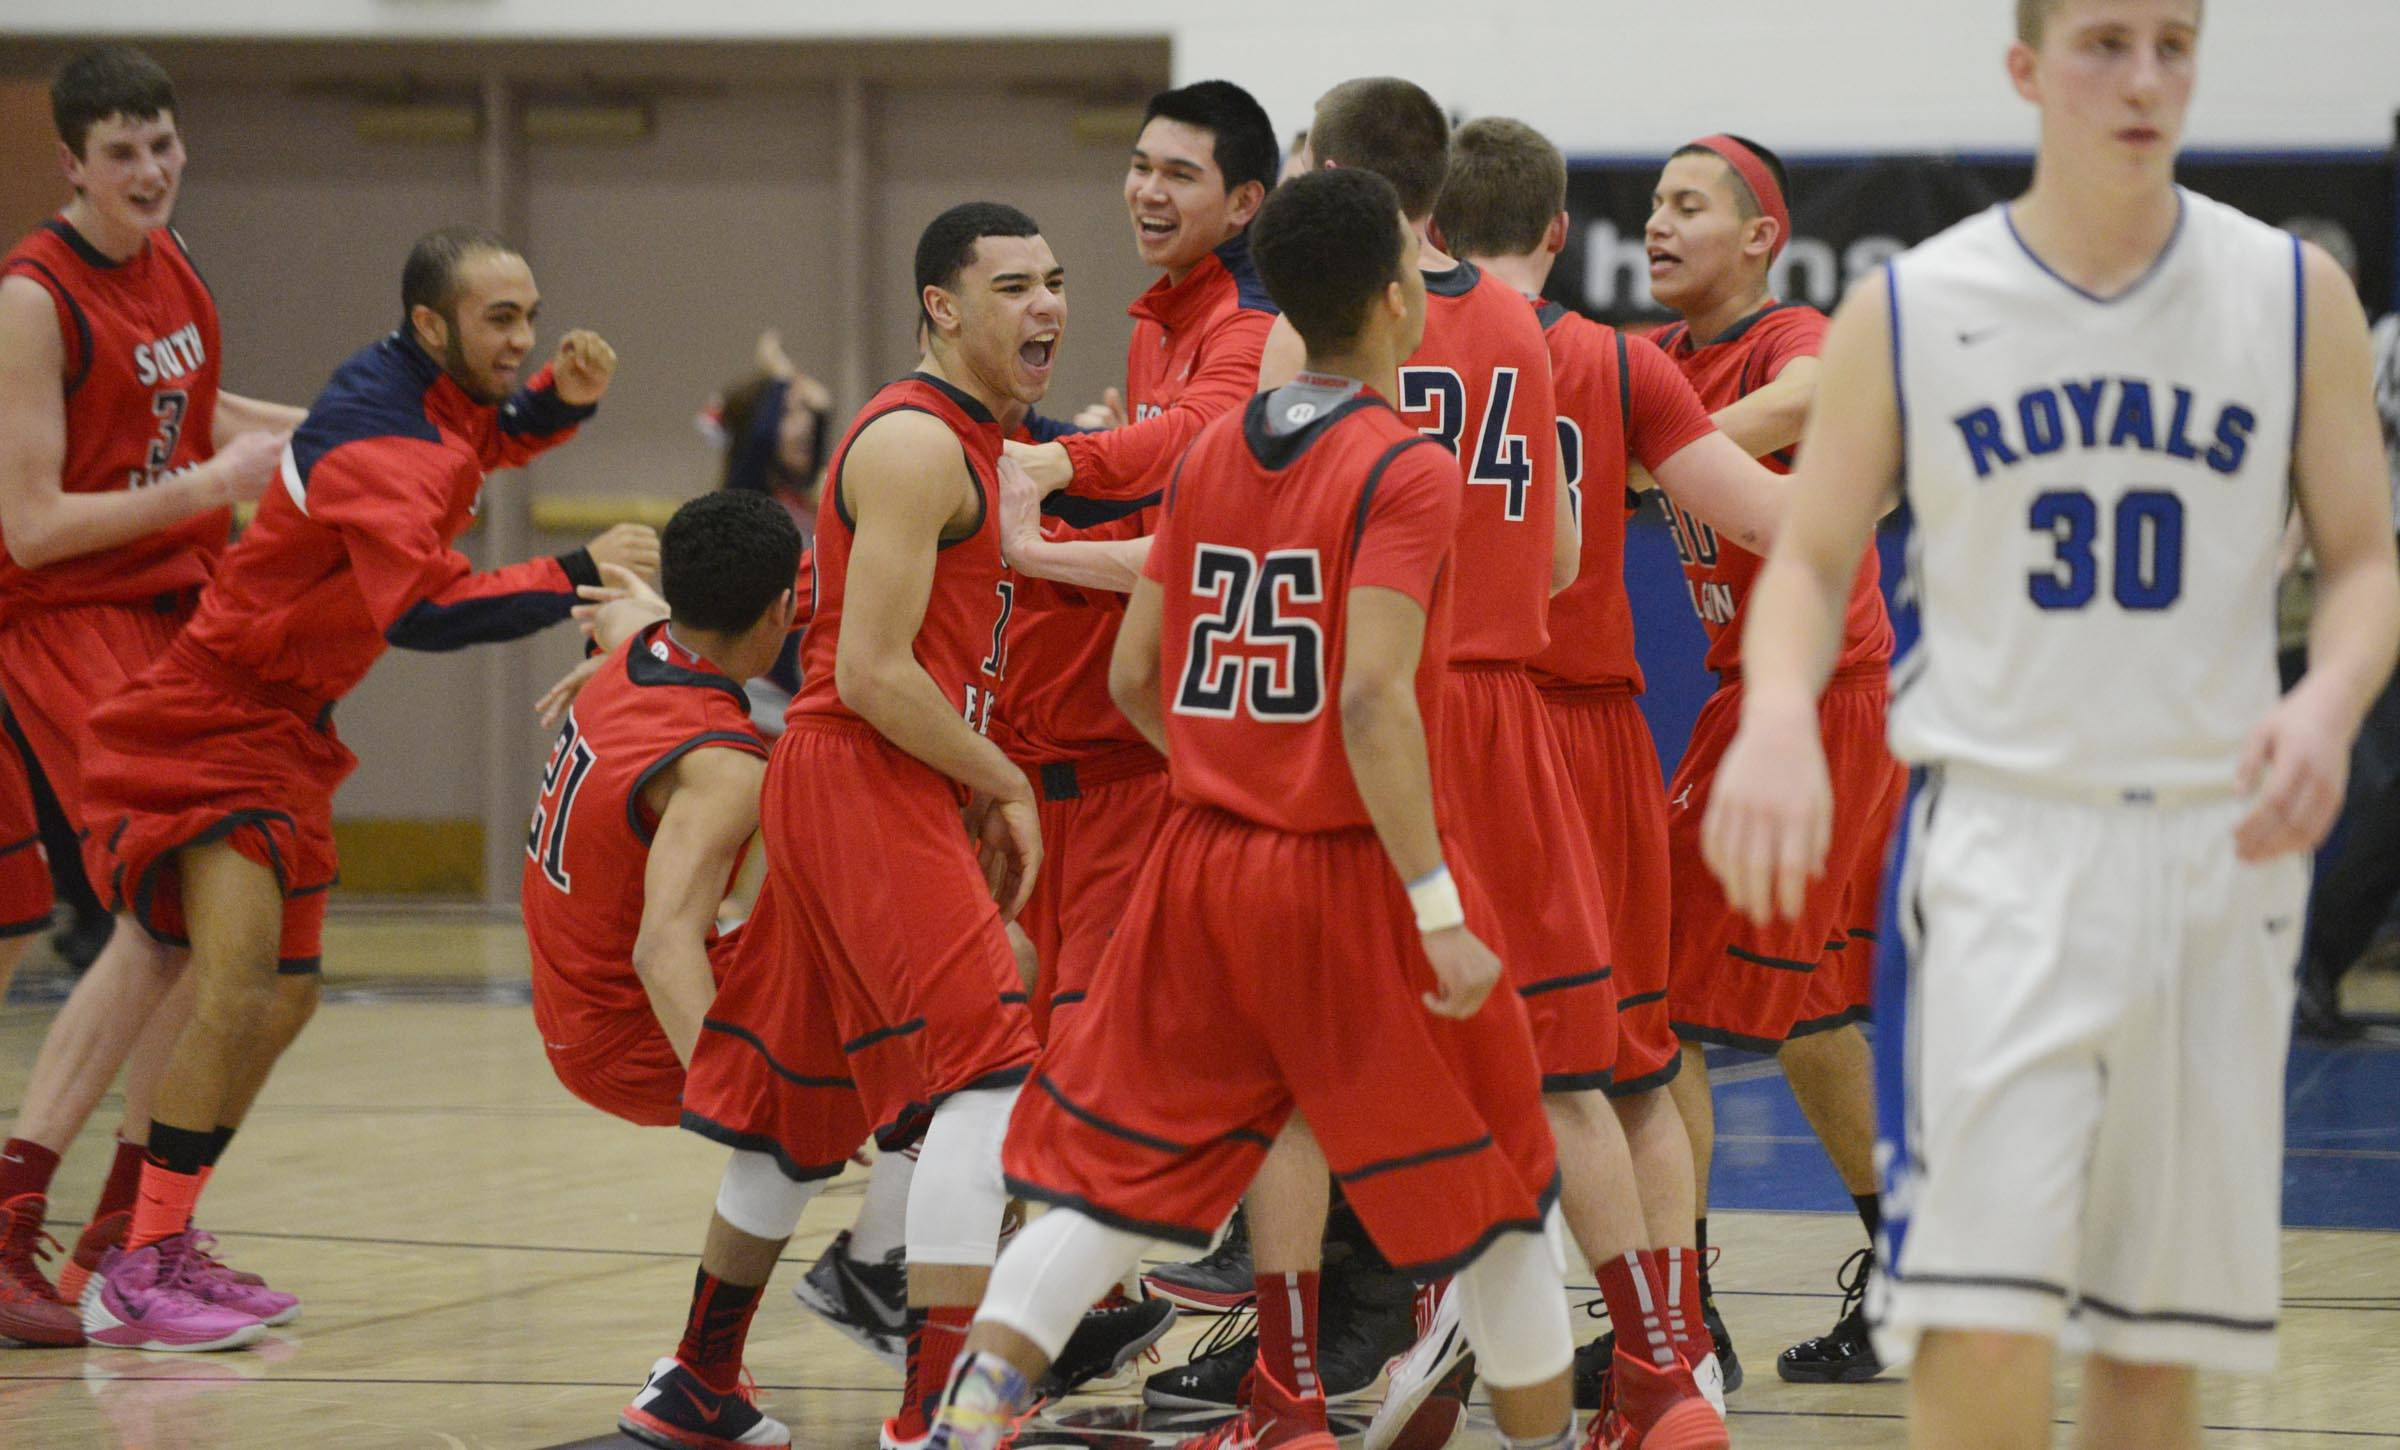 South Elgin celebrates its win over Larkin Tuesday in the St. Charles North regional.